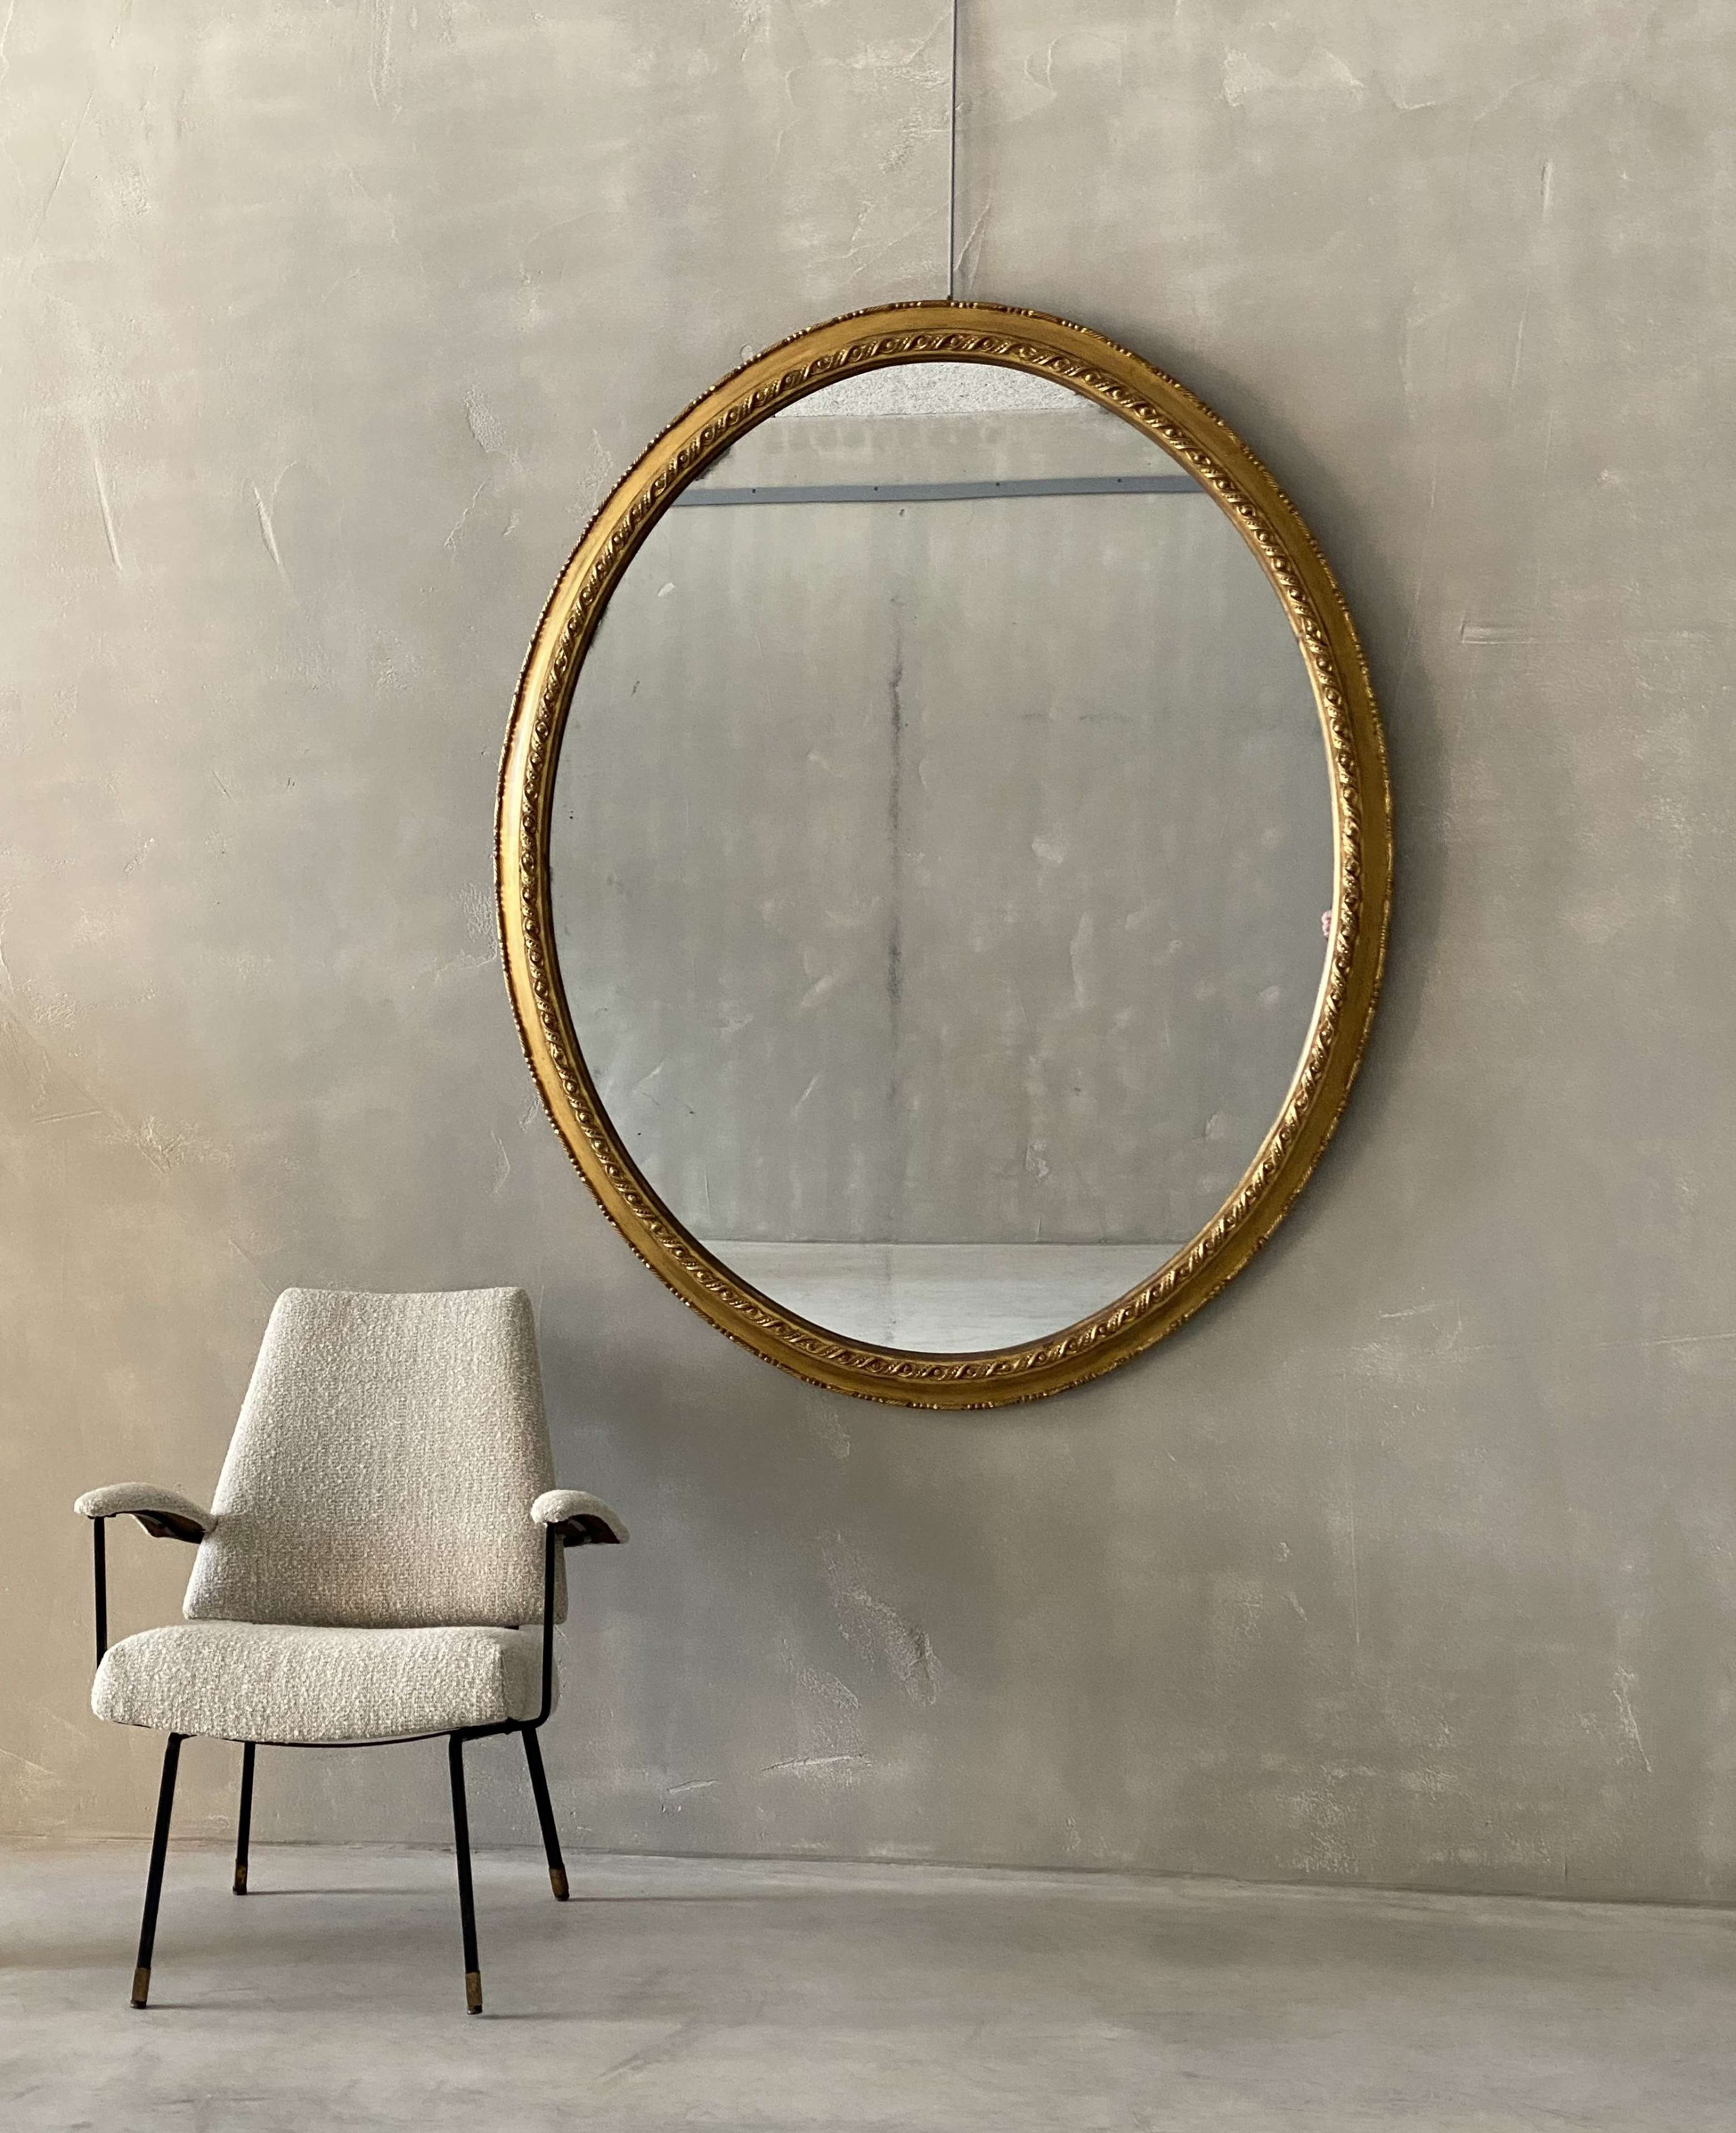 A Large C19th English oval mirror